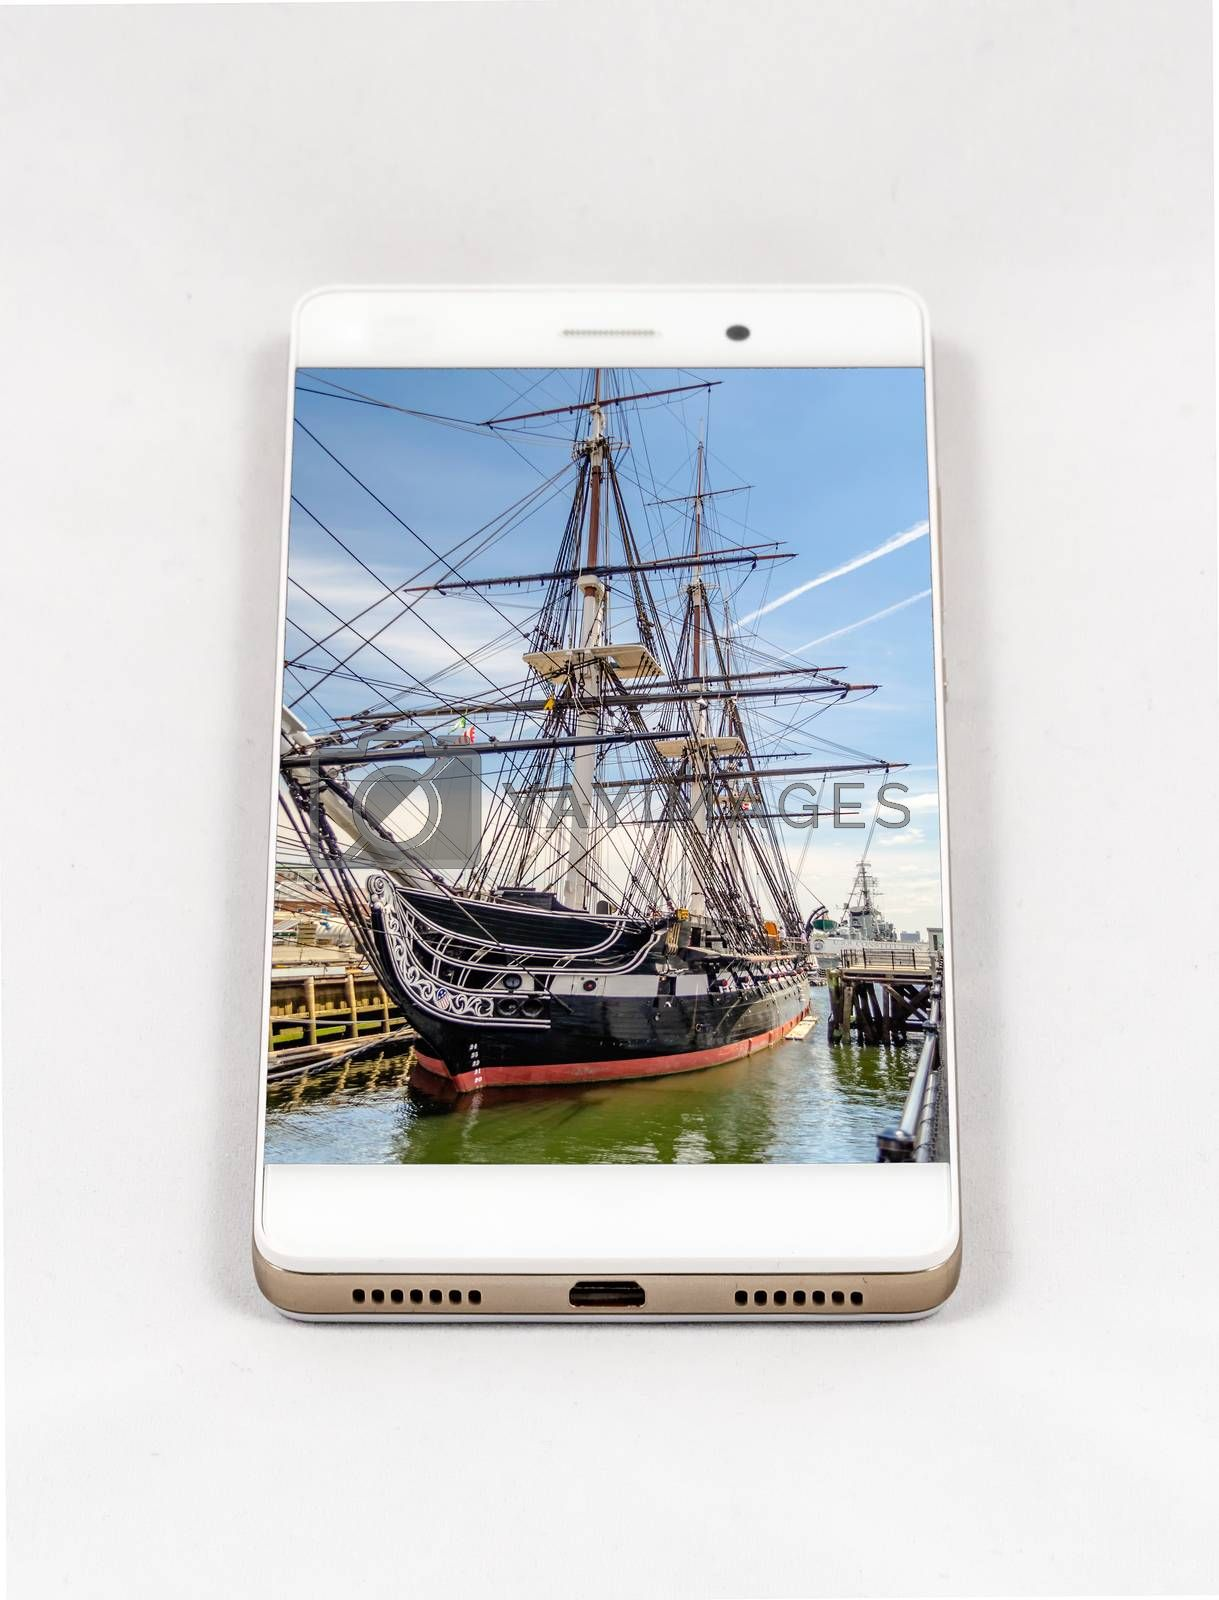 Modern smartphone with USS Constitution frigate docked in the Boston Harbor, USA. Concept for travel smartphone photography. All images in the composition are made by me and  available on my portfolio